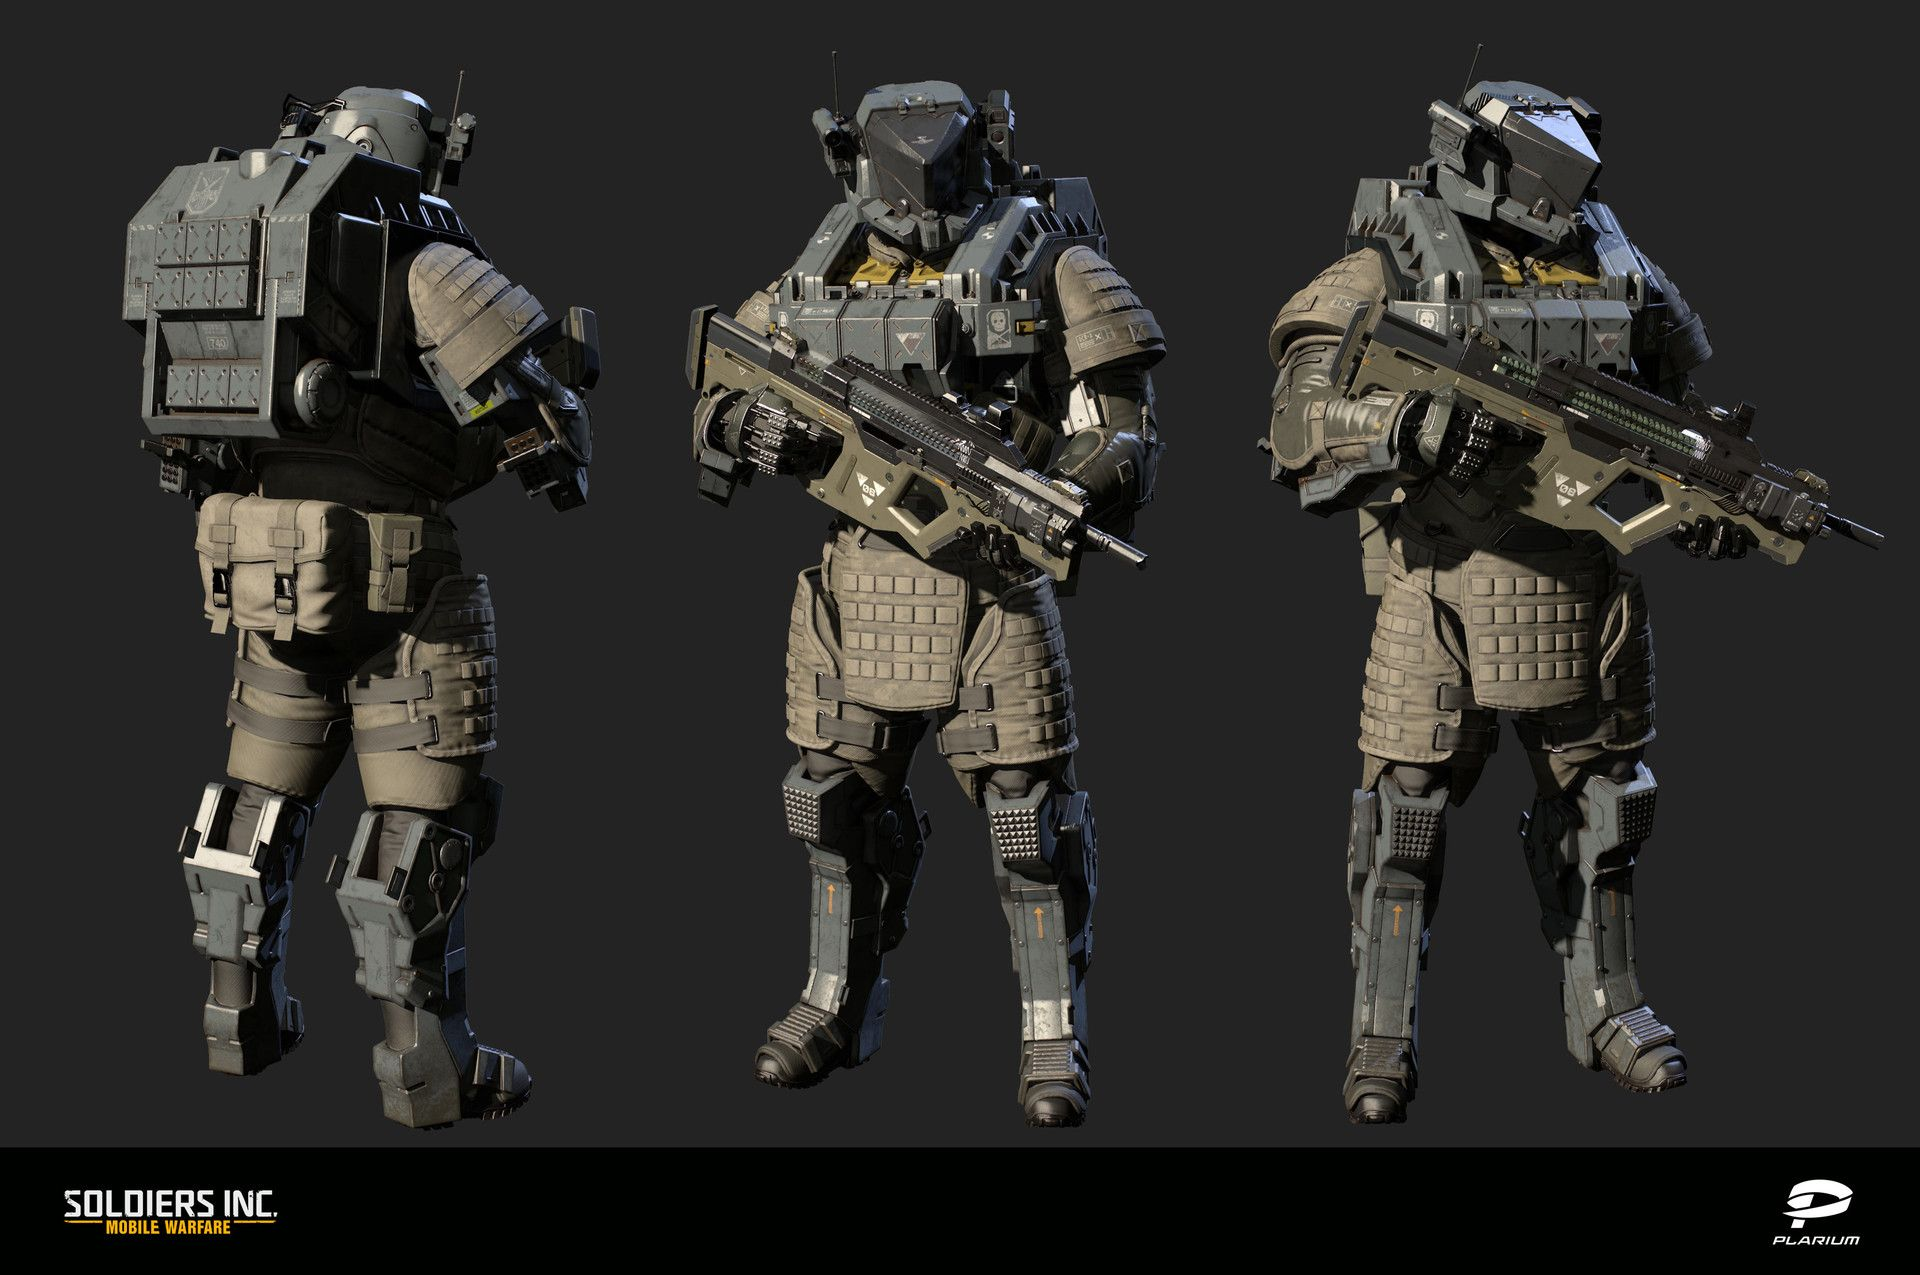 Hi! Here is 3D character model that I recently did for our new project Soldiers Inc: Mobile Warfare. Hope you'll like it!